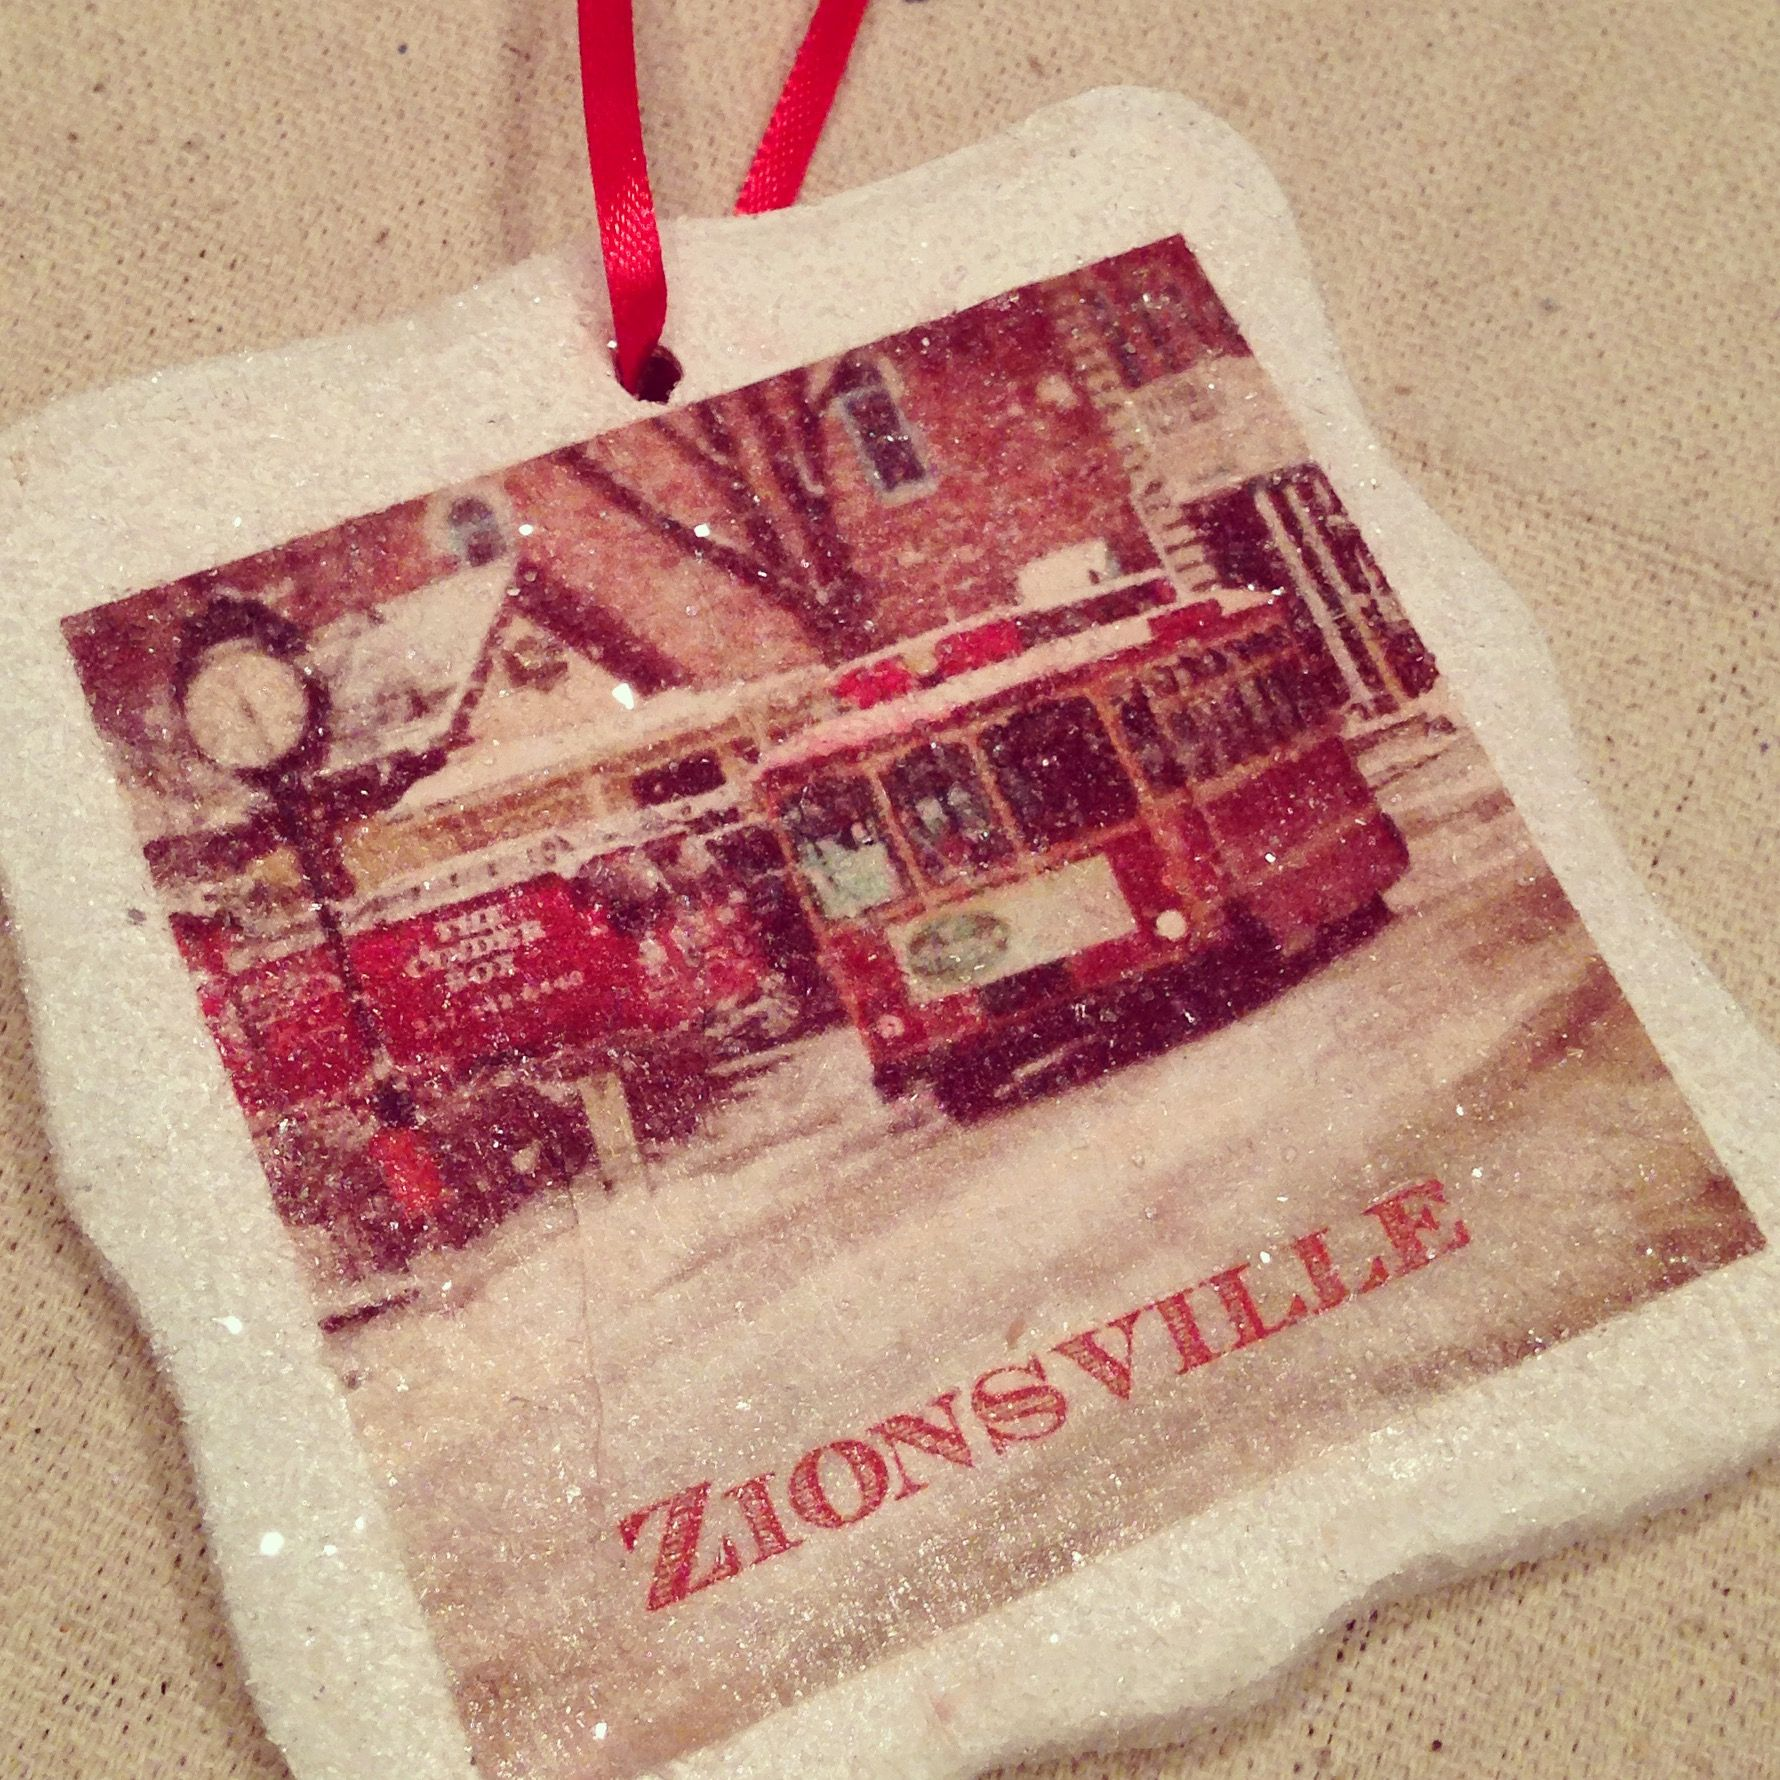 Hand Made Zionsville Ornaments From Fivethirty Home, Wwwfivethirtyhomecom